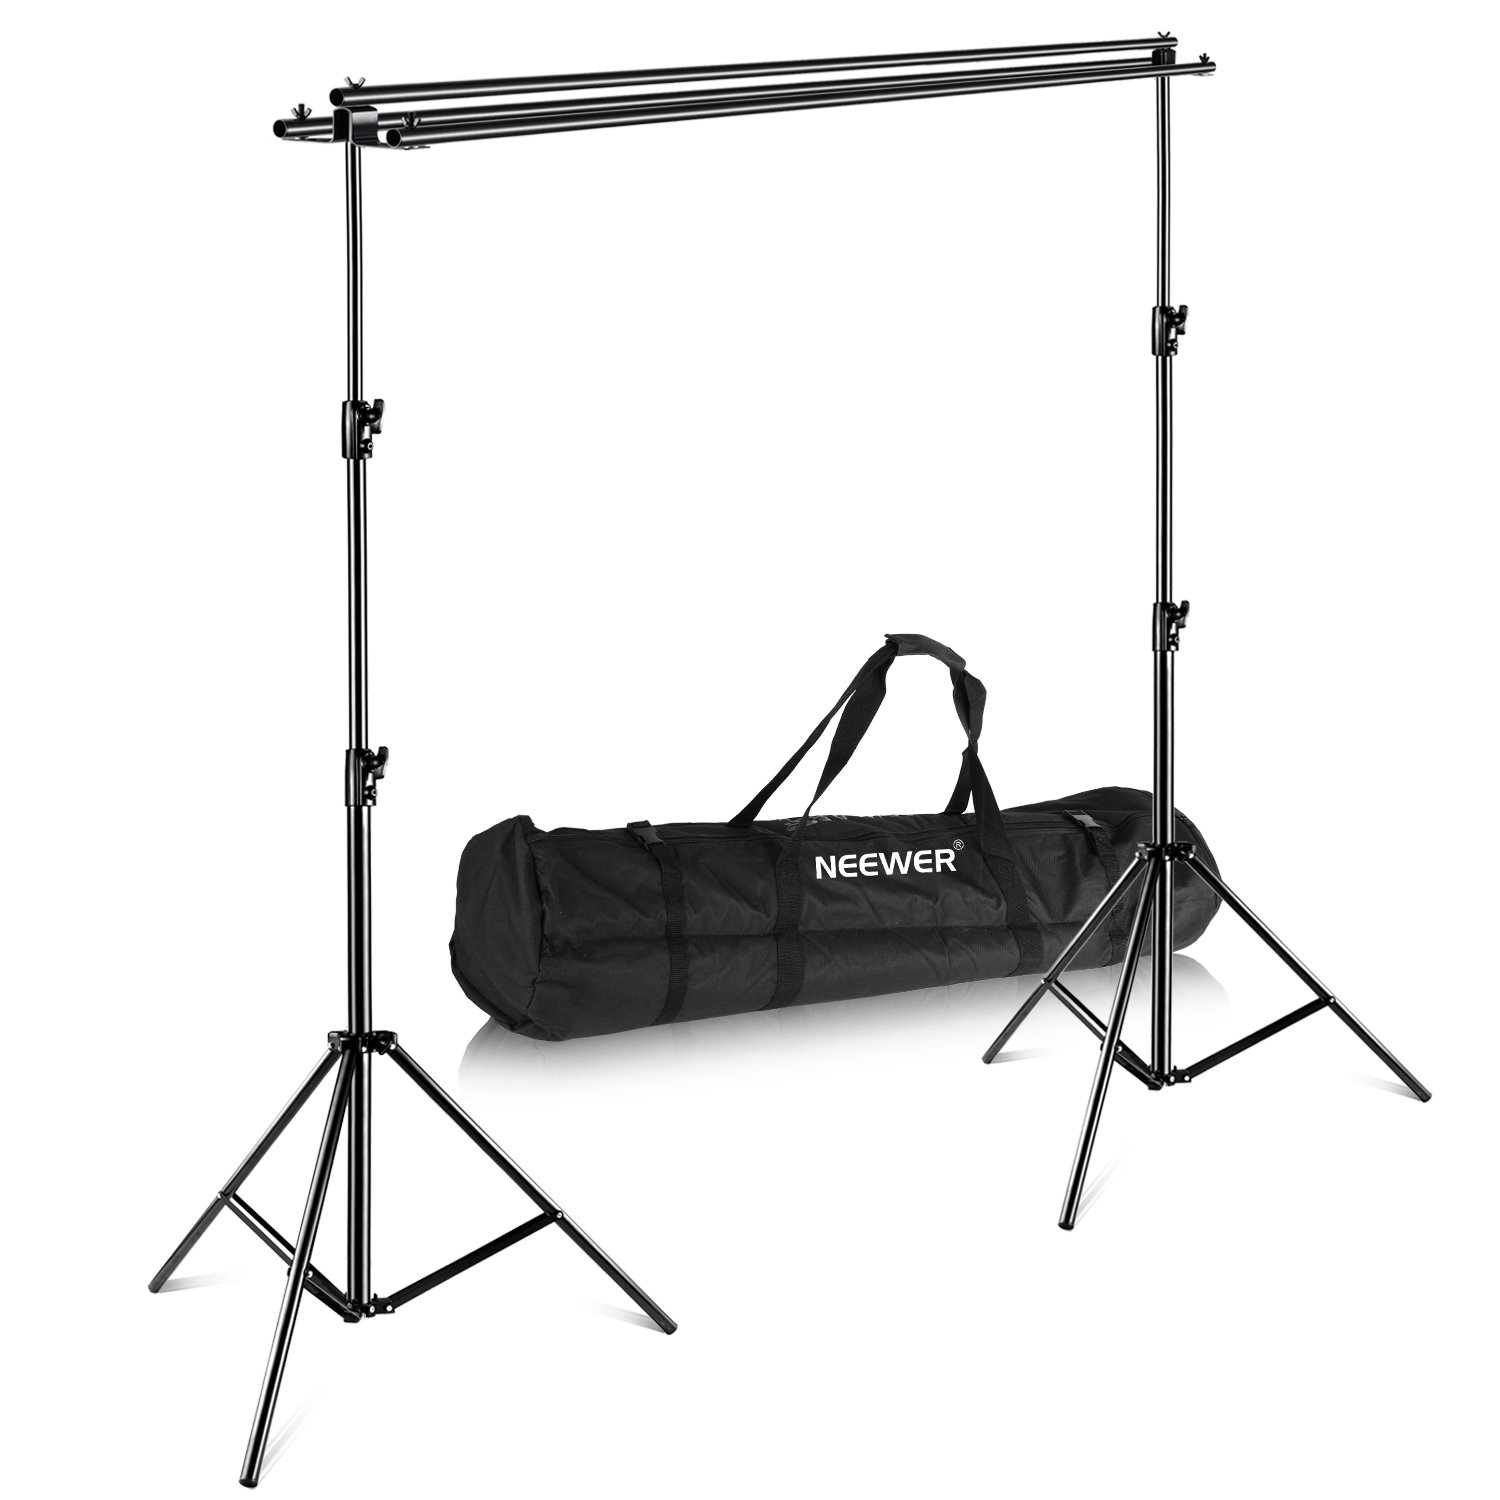 Neewer Photography Backdrop Support System with Carrying Case - Maximum 8.8x10 feet/2.7x3 meters (Height x Width) for Muslin, Paper and Canvas Backdrops for Photo Video Studio Shooting by Neewer